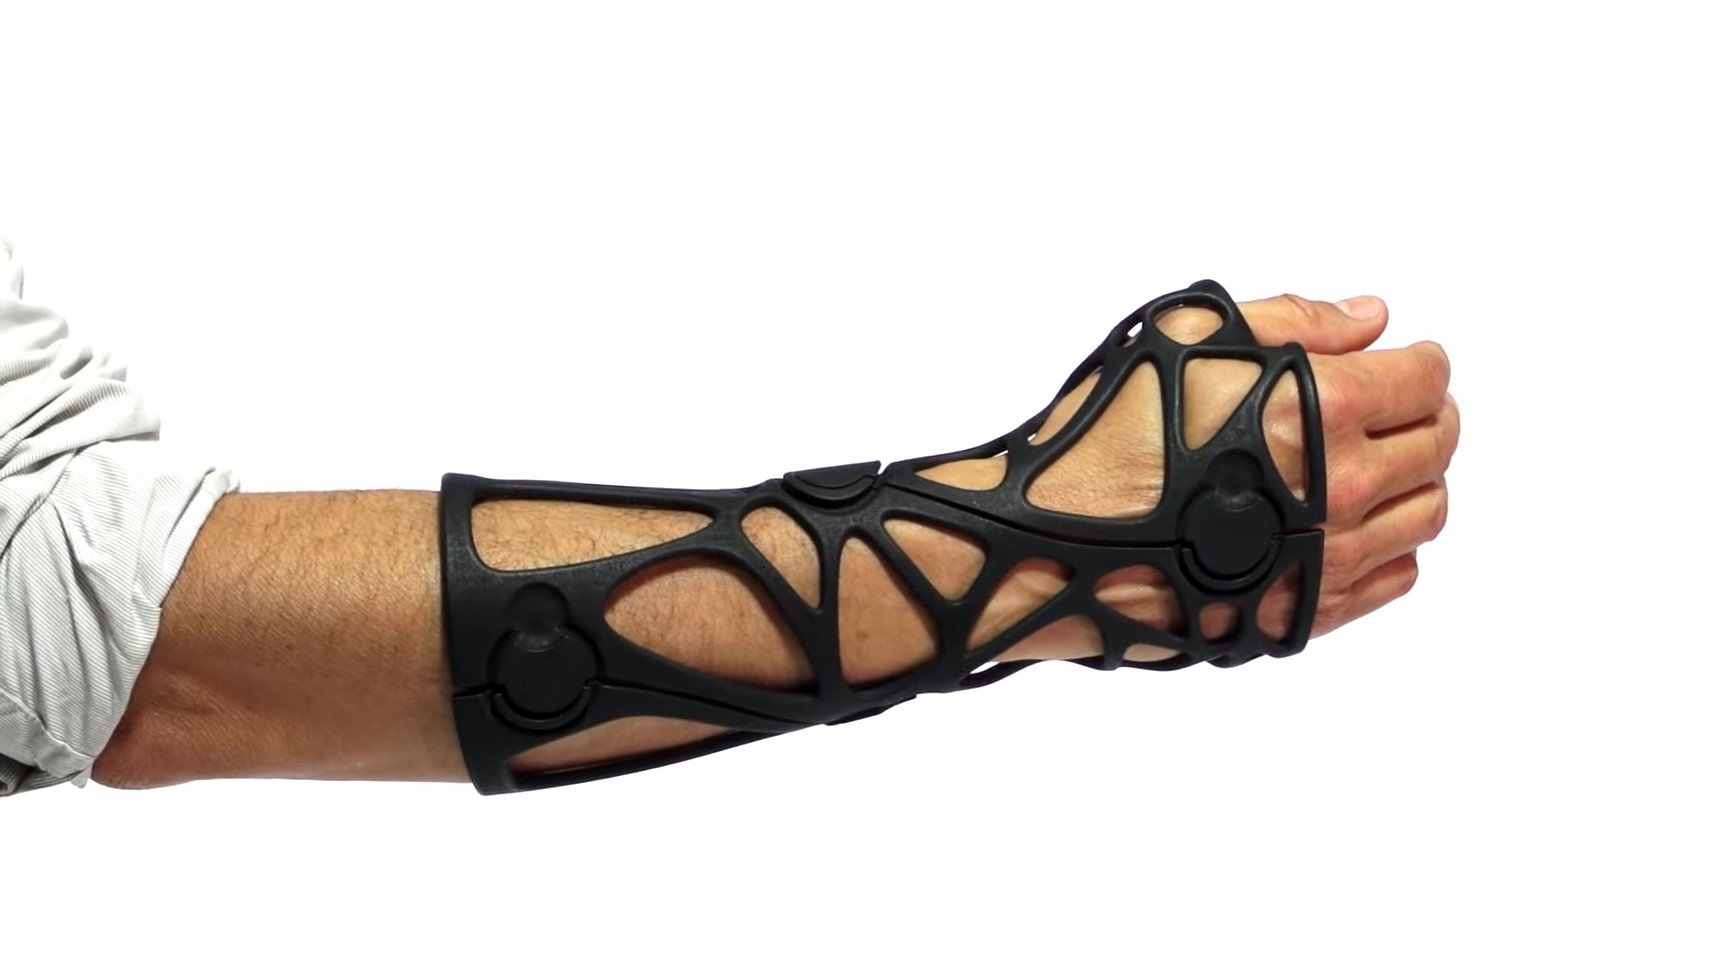 3D Printed Orthotics: 7 Most Promising Projects | All3DP